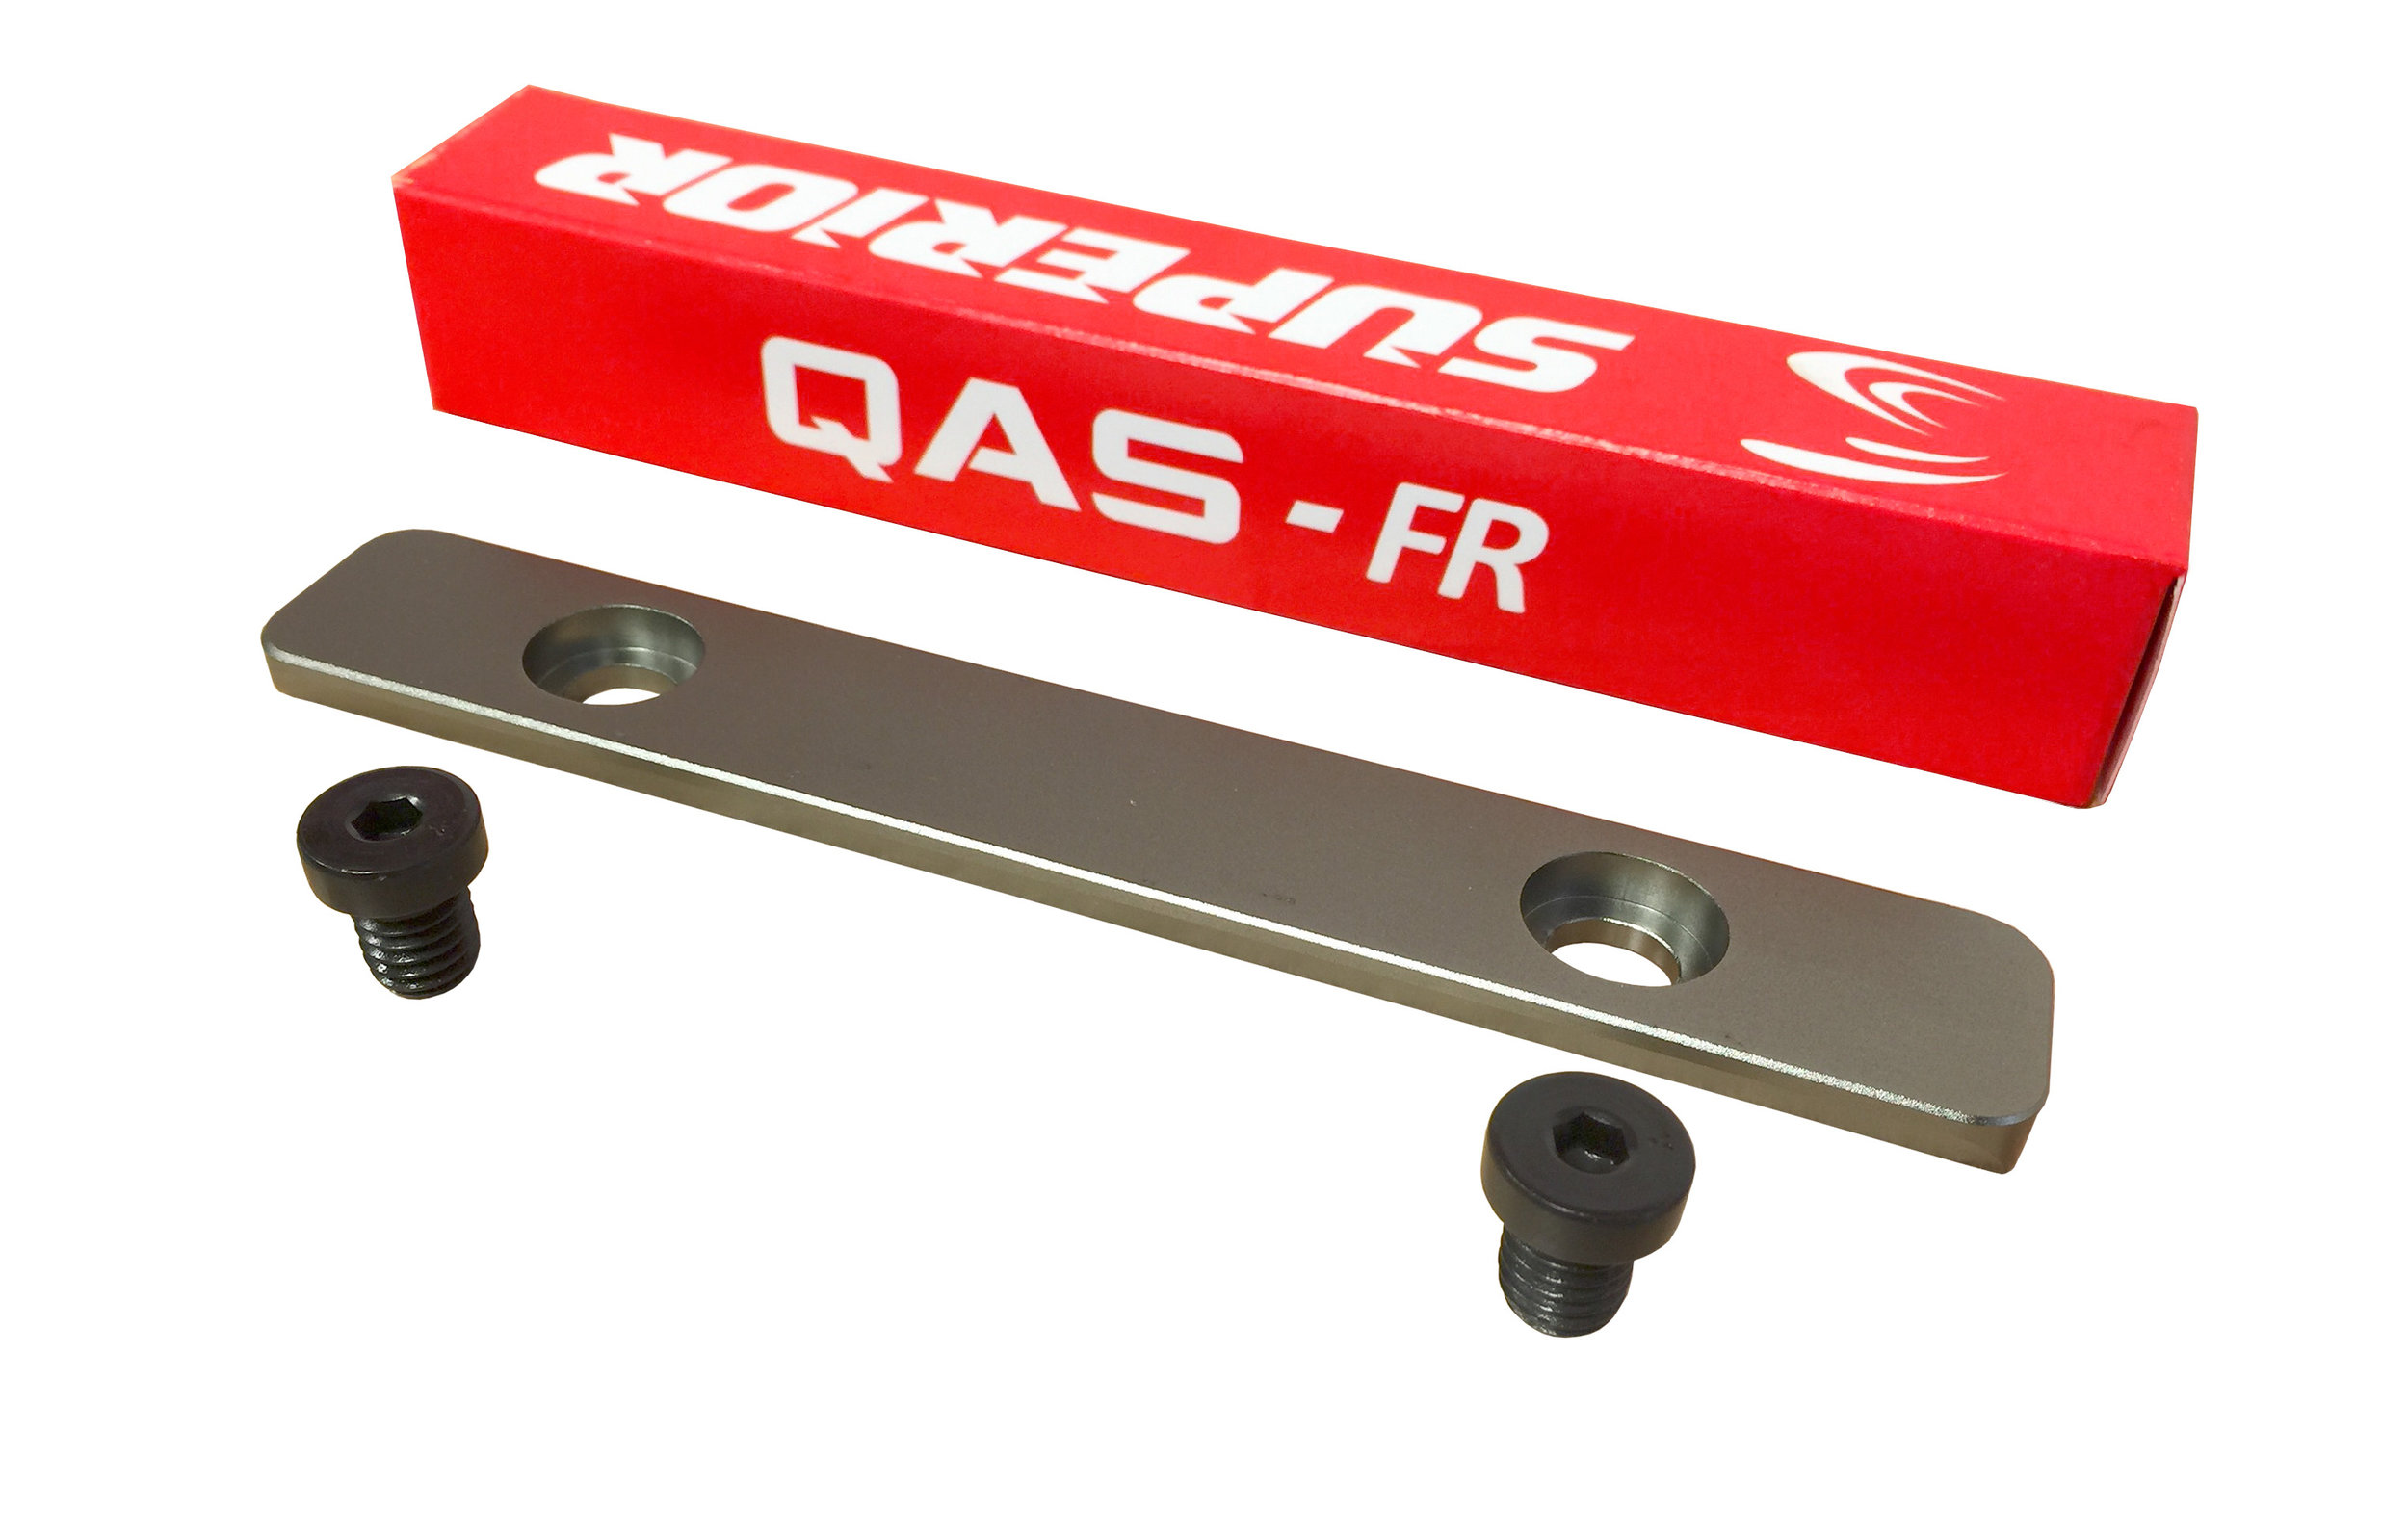 QAS-FR bracket can be used on a fresno trowel or the Wagman speed float.